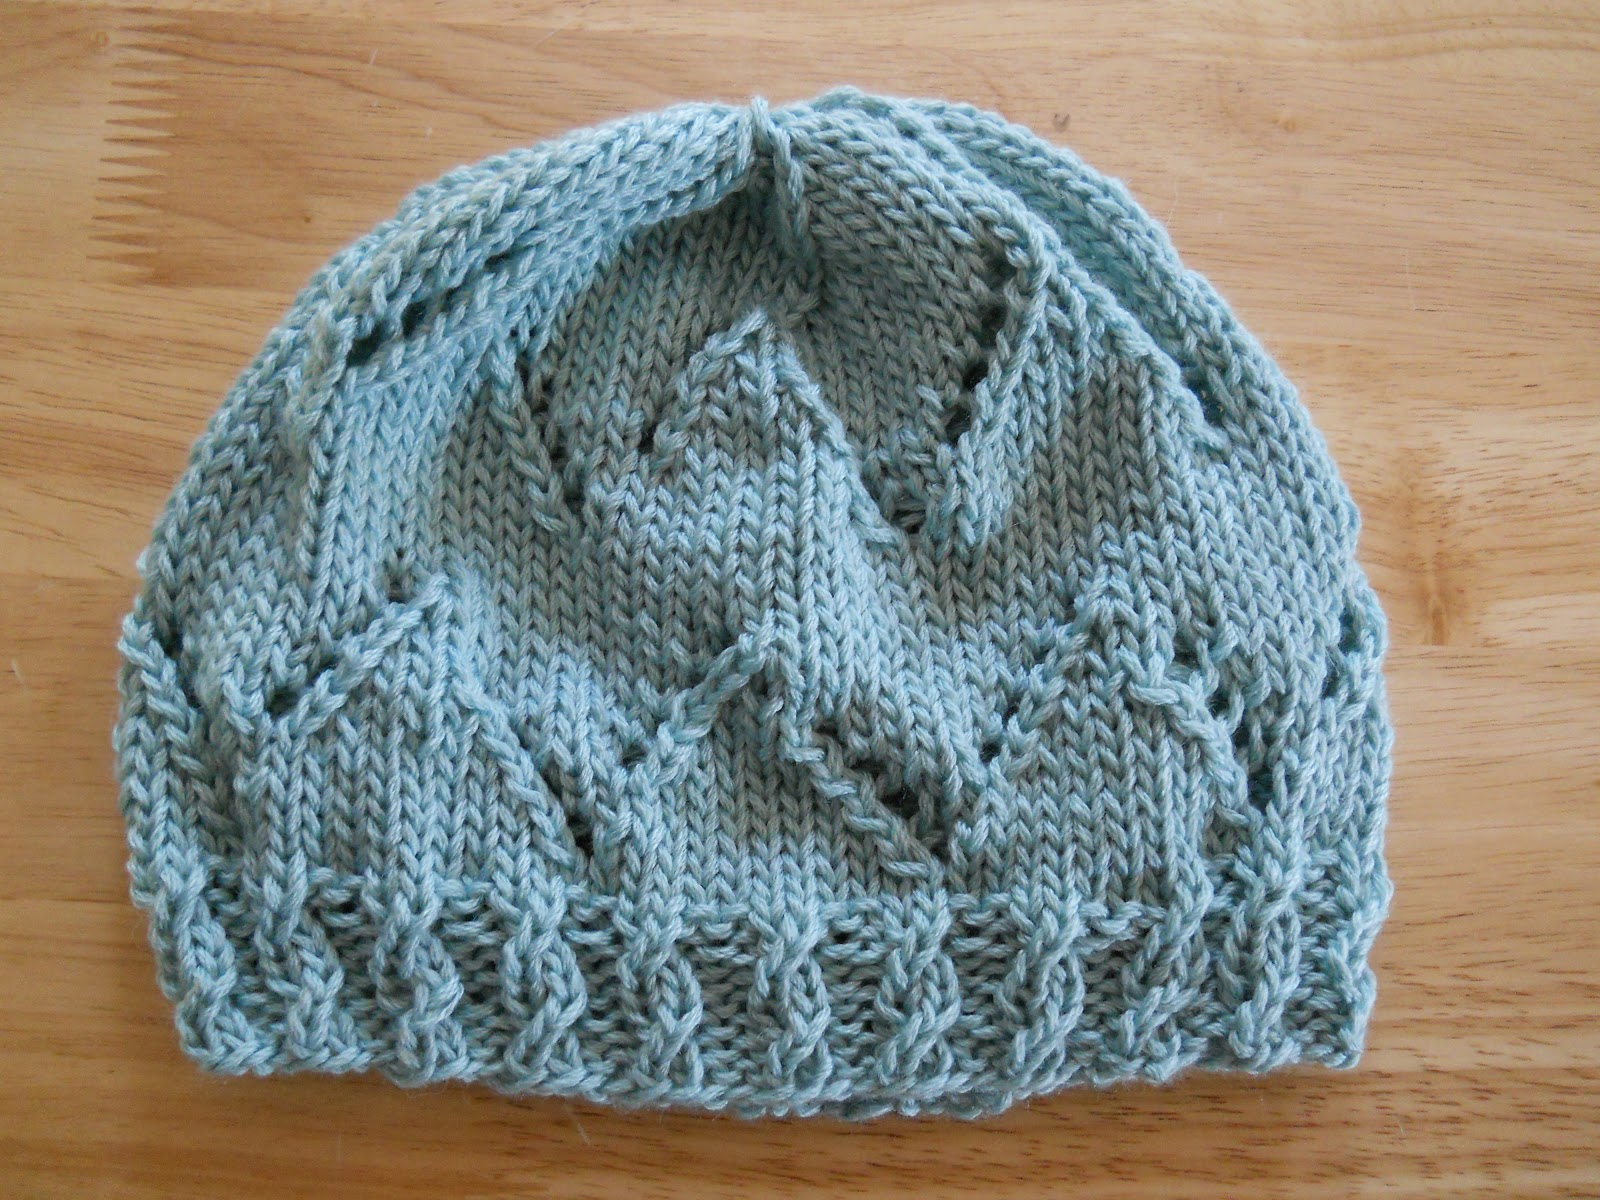 Knitting with Schnapps: Introducing Braided Hope: A Hat Full of Hope ...